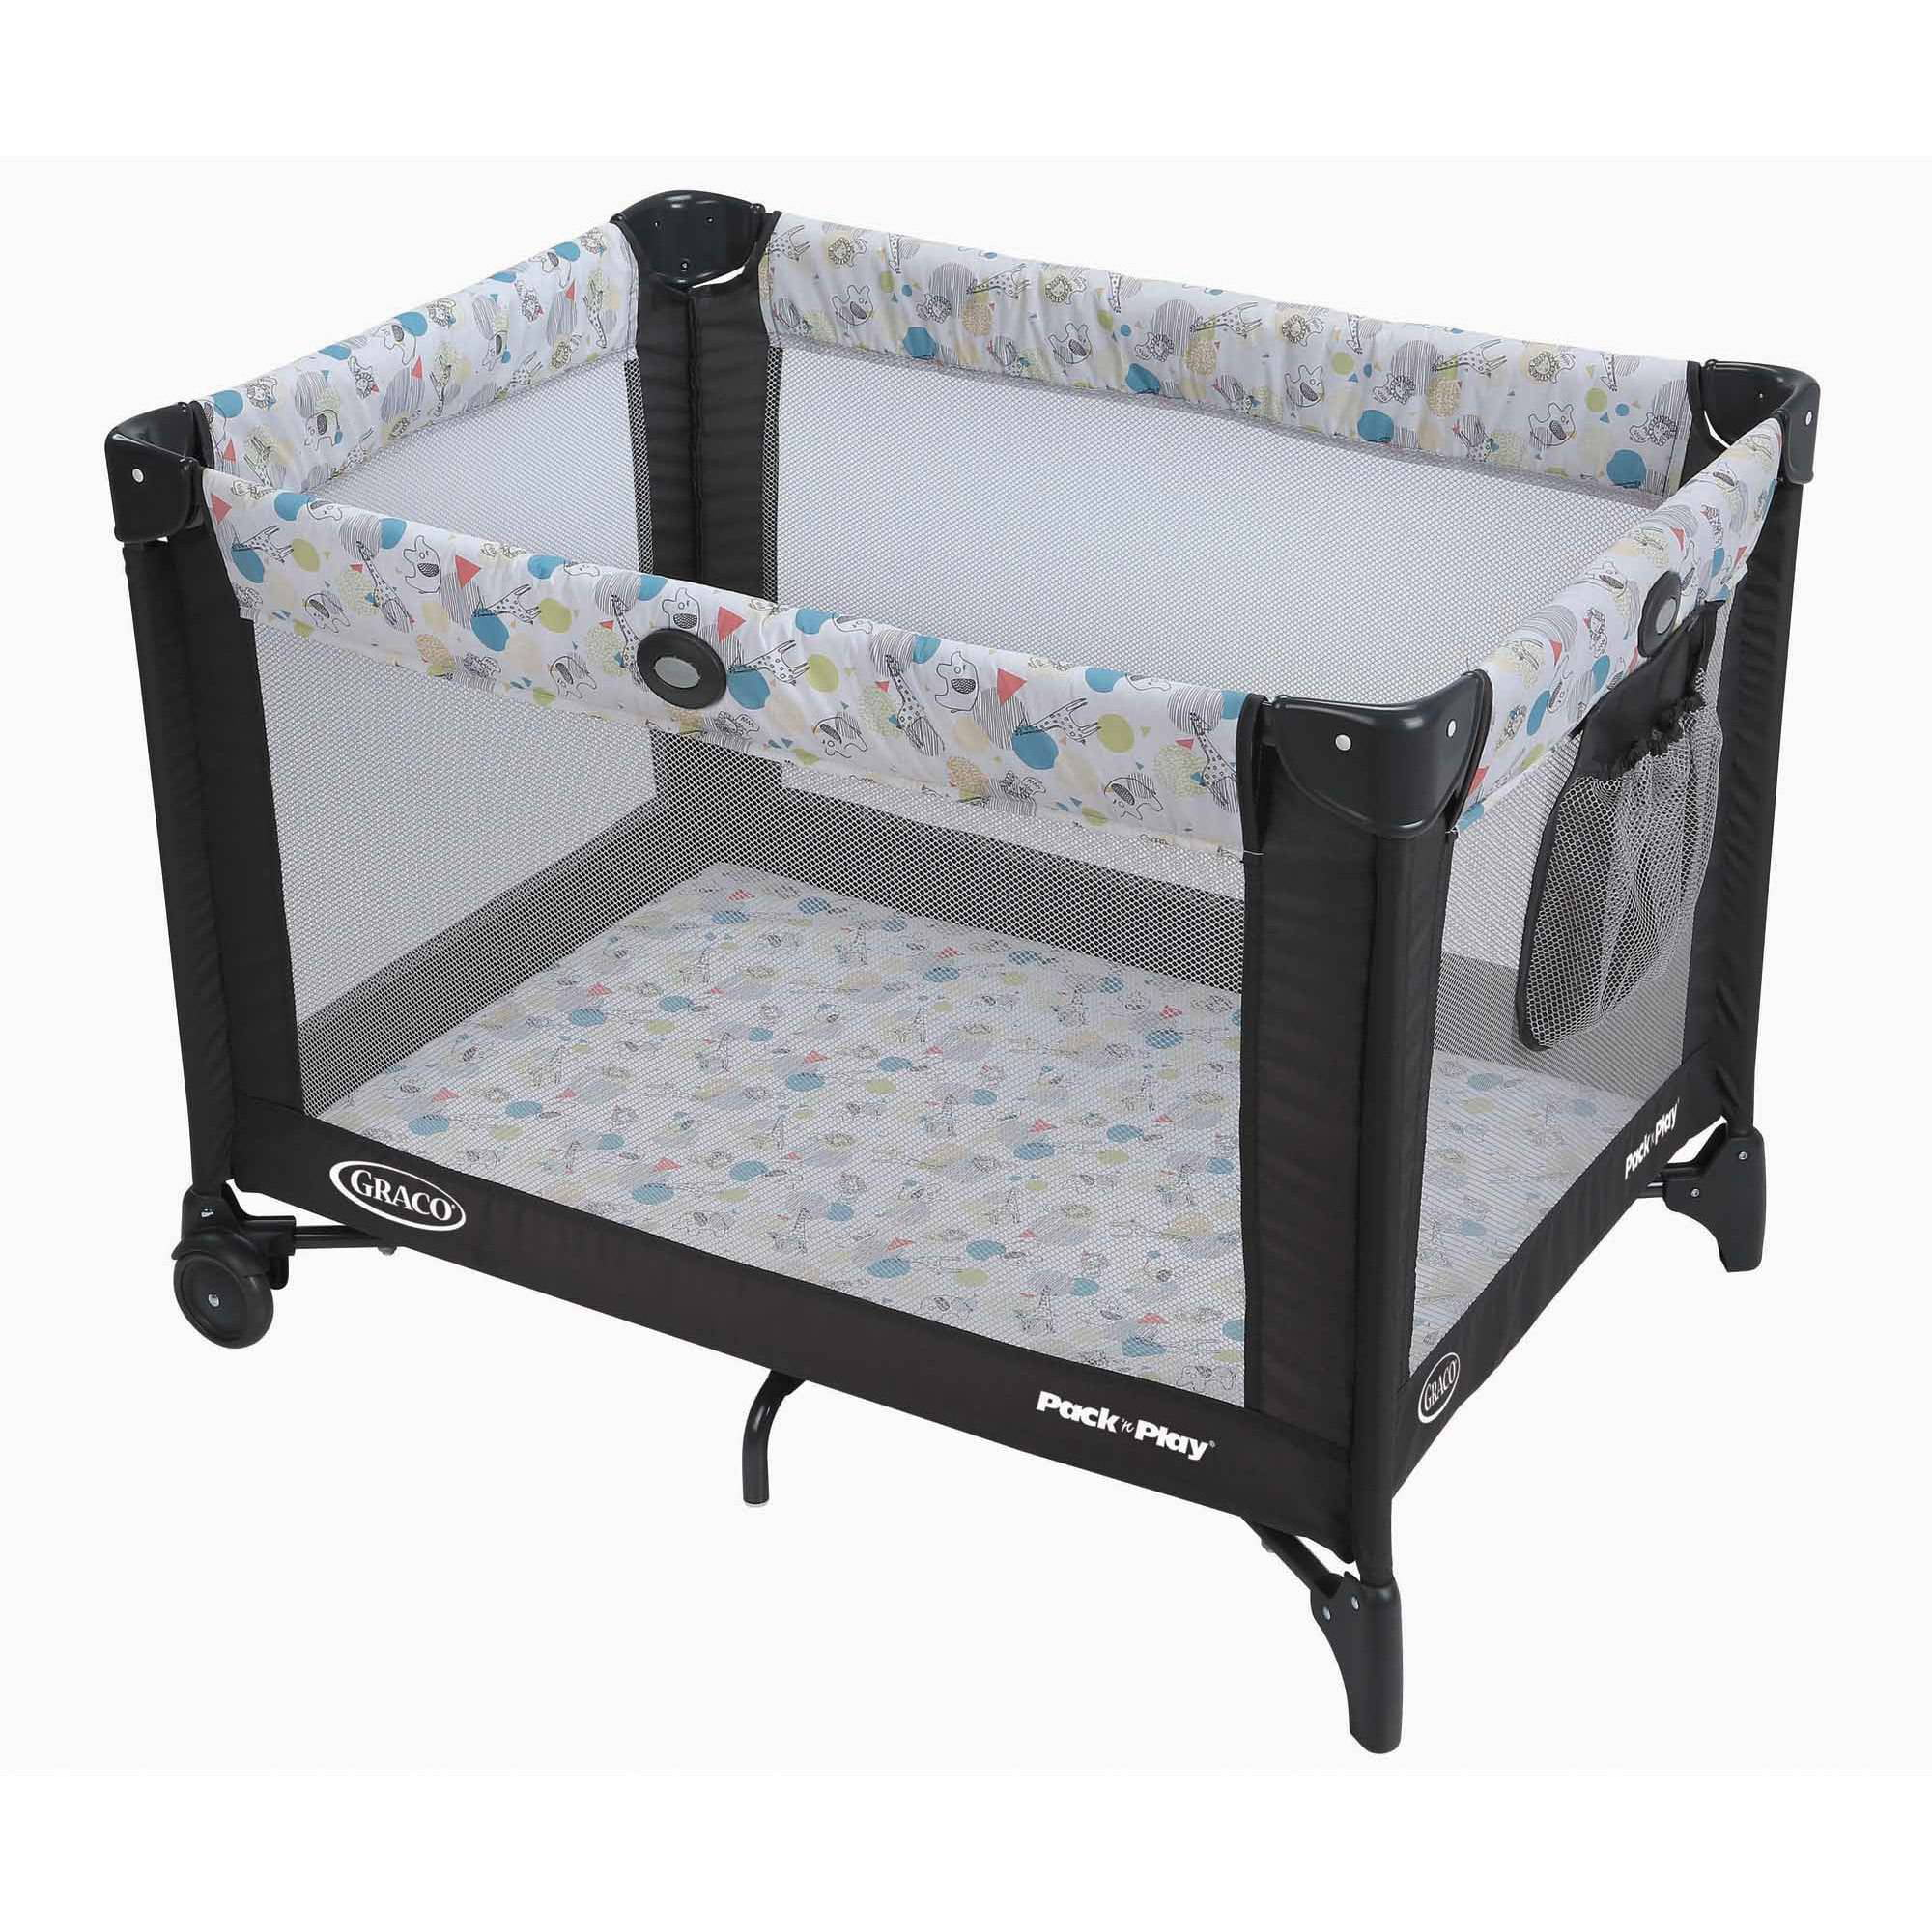 Graco Pack n Play Playard Baby Play Yard Carnival Walmart